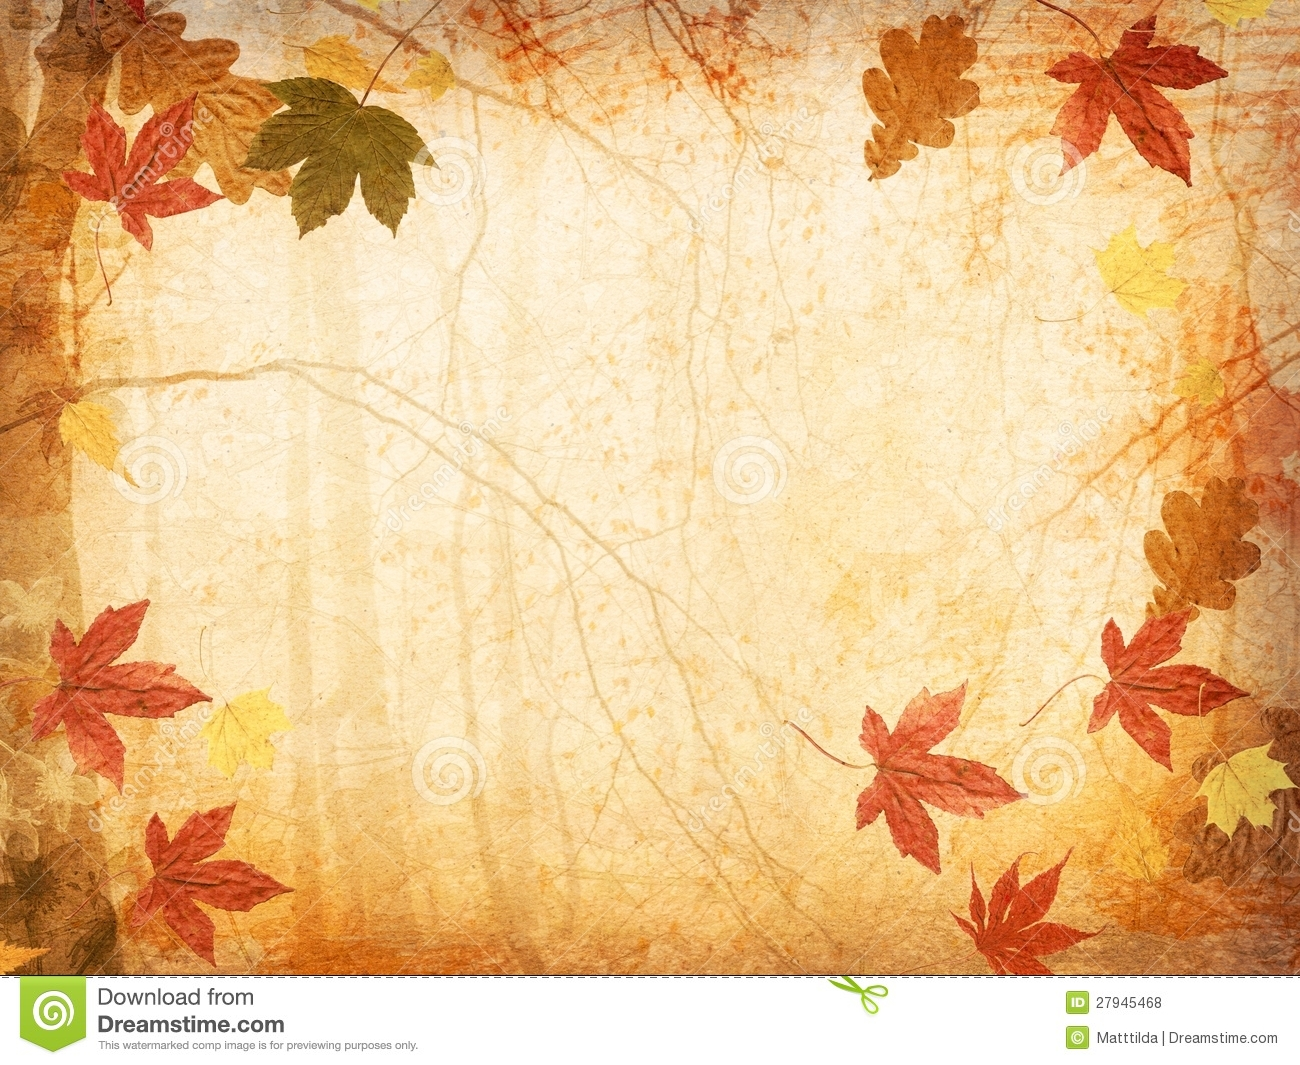 Fall backgrounds clipart image library stock Fall Background Clipart (96+ images in Collection) Page 1 image library stock